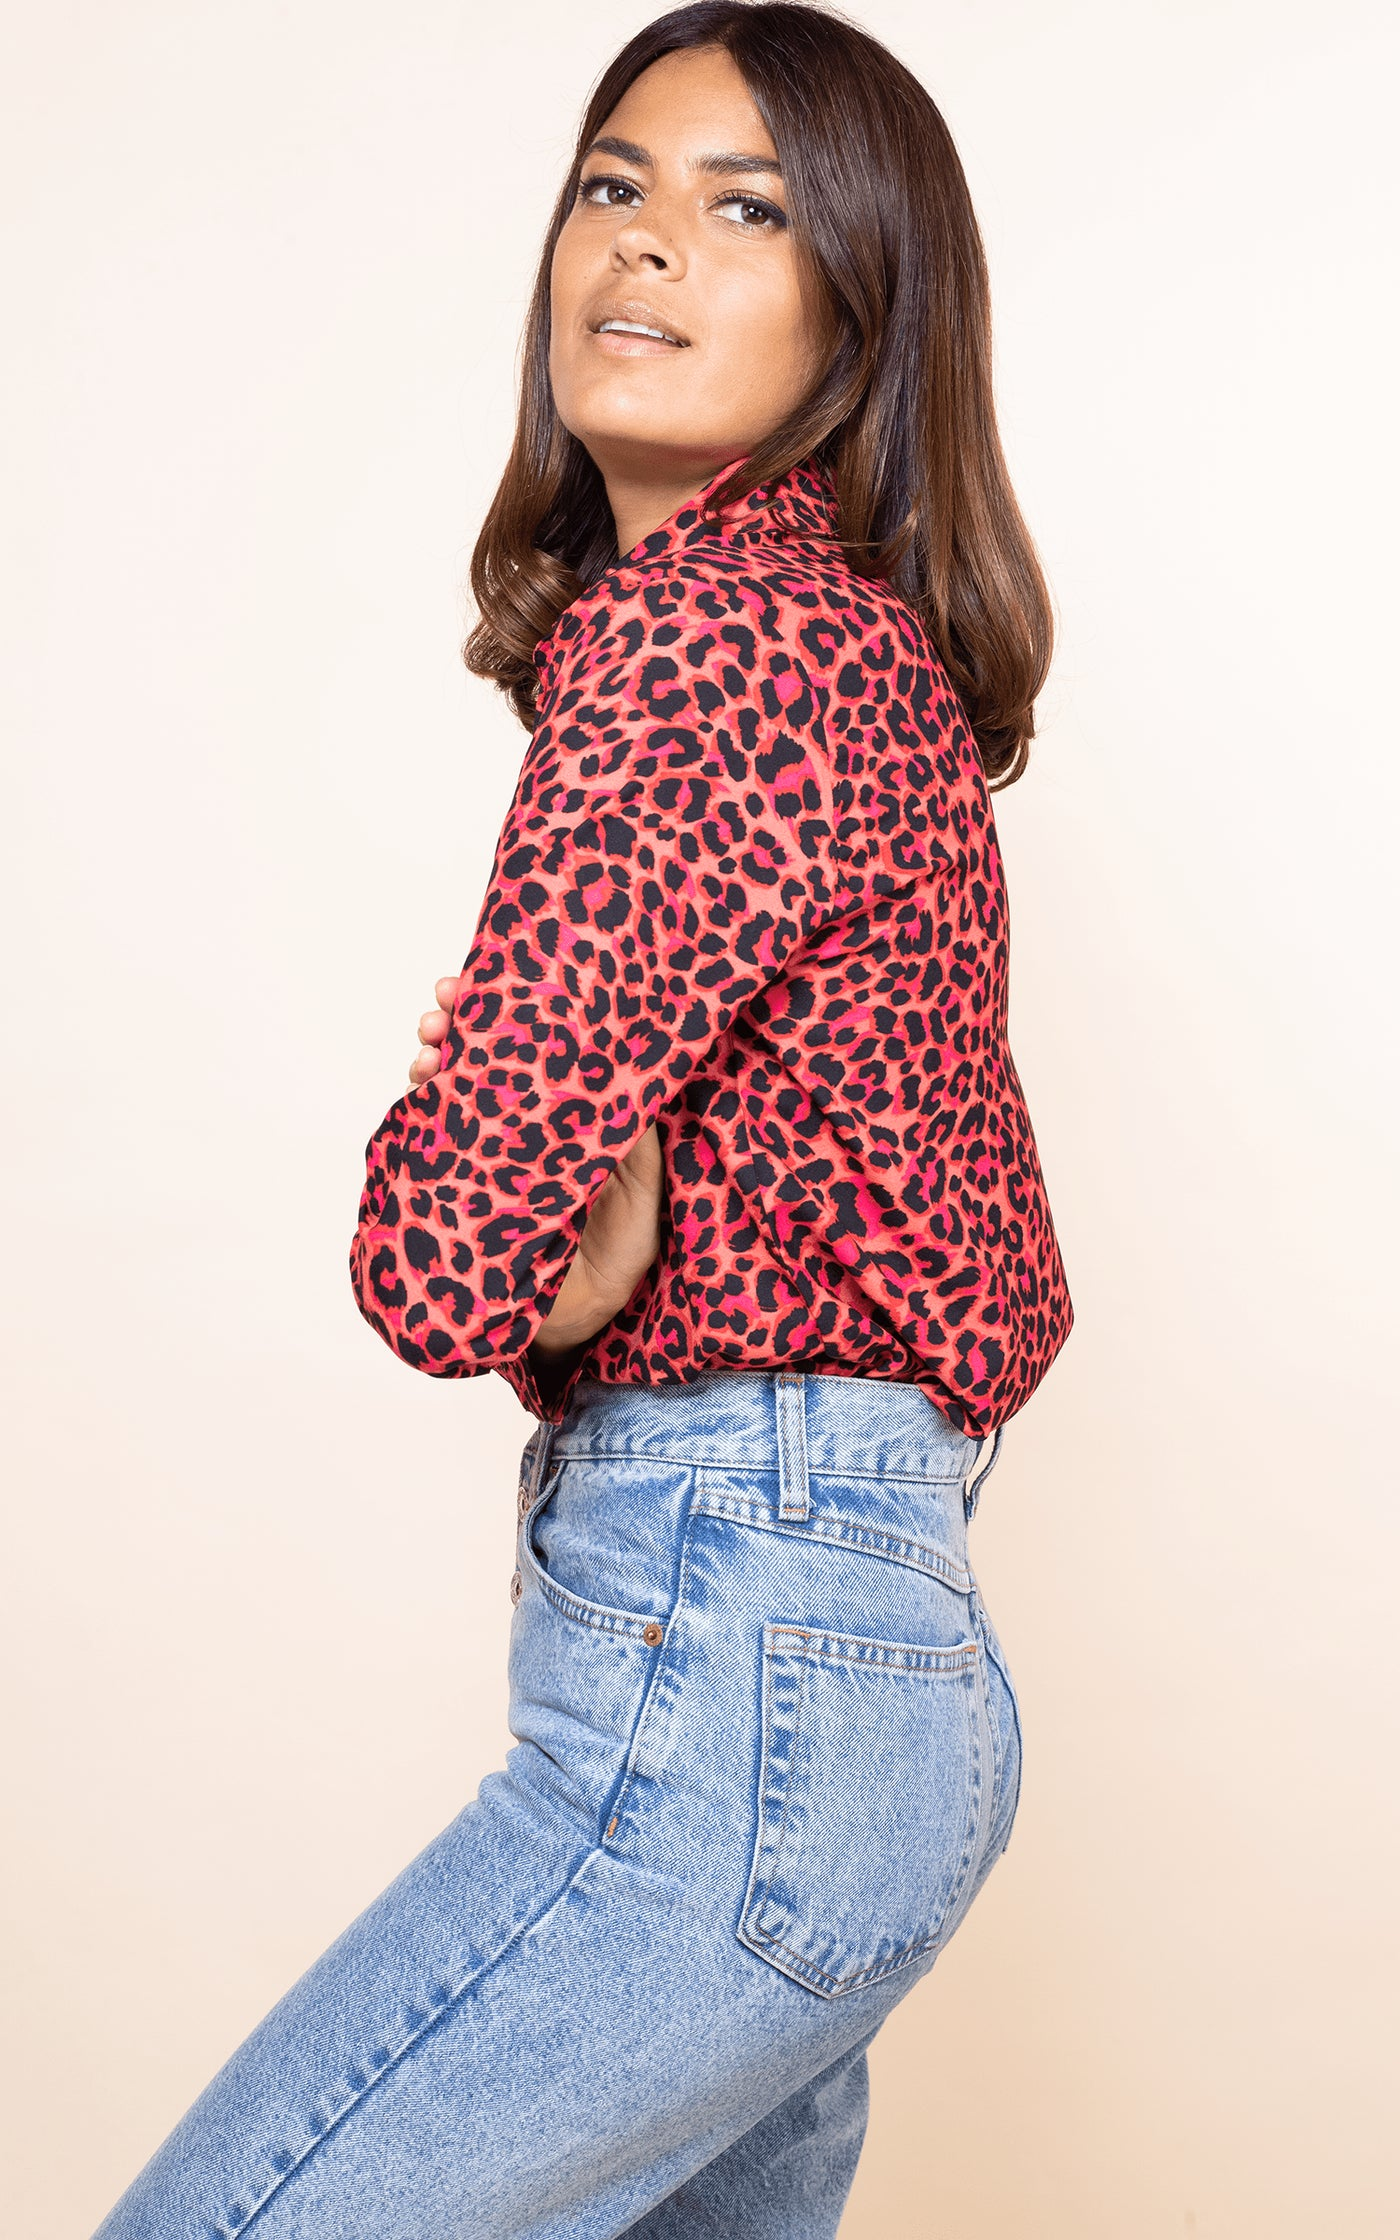 Dancing Leopard model crossed arms and faces sideways wearing San Diego Shirt in red leopard with jeans